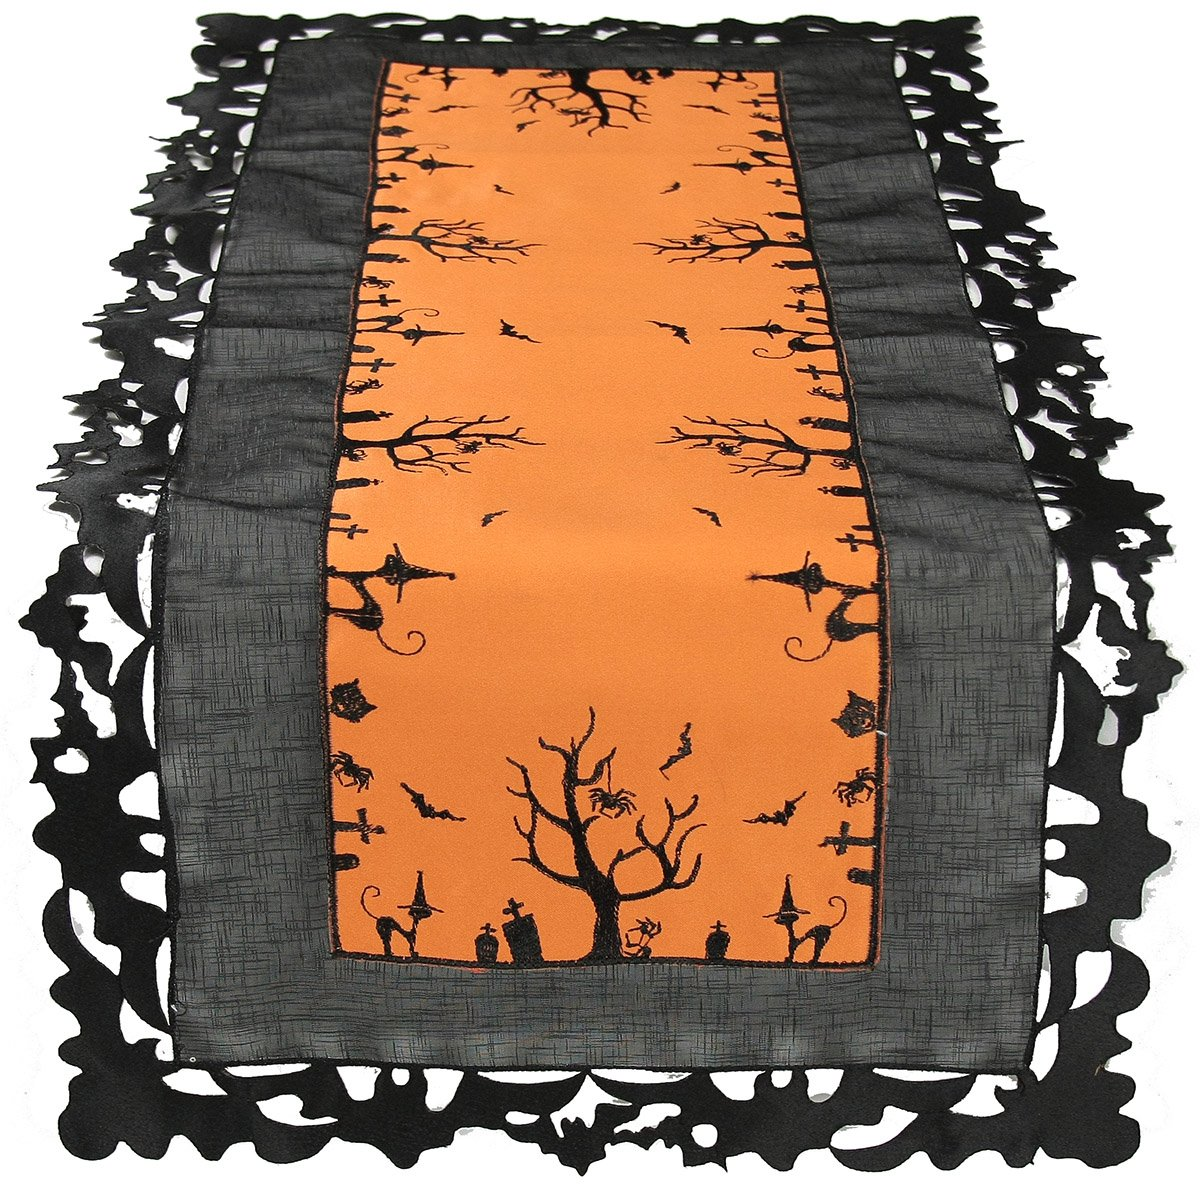 Xia Home Fashions Hallows Eve Embroidered Cutwork 15-Inch by 54-Inch Table Runner